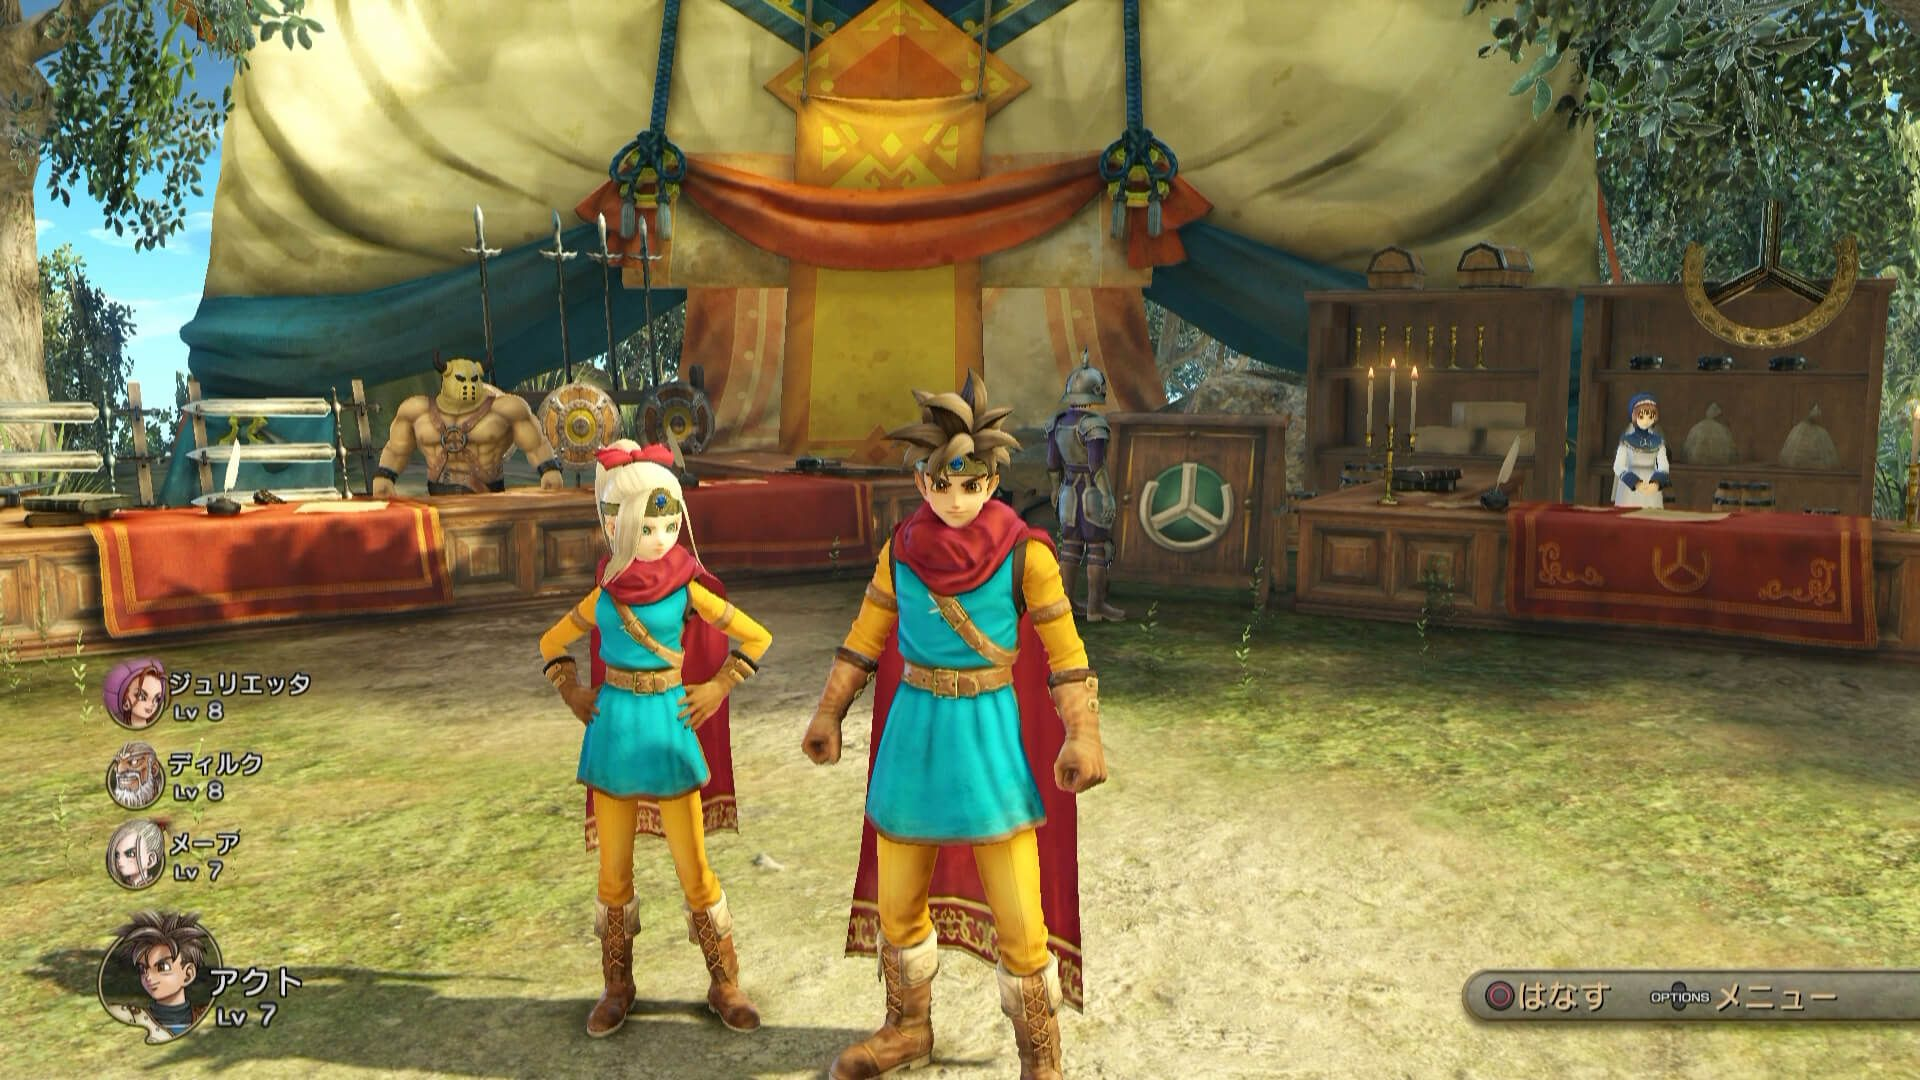 Dragon Quest 8 Wallpapers Top Free Dragon Quest 8 Backgrounds